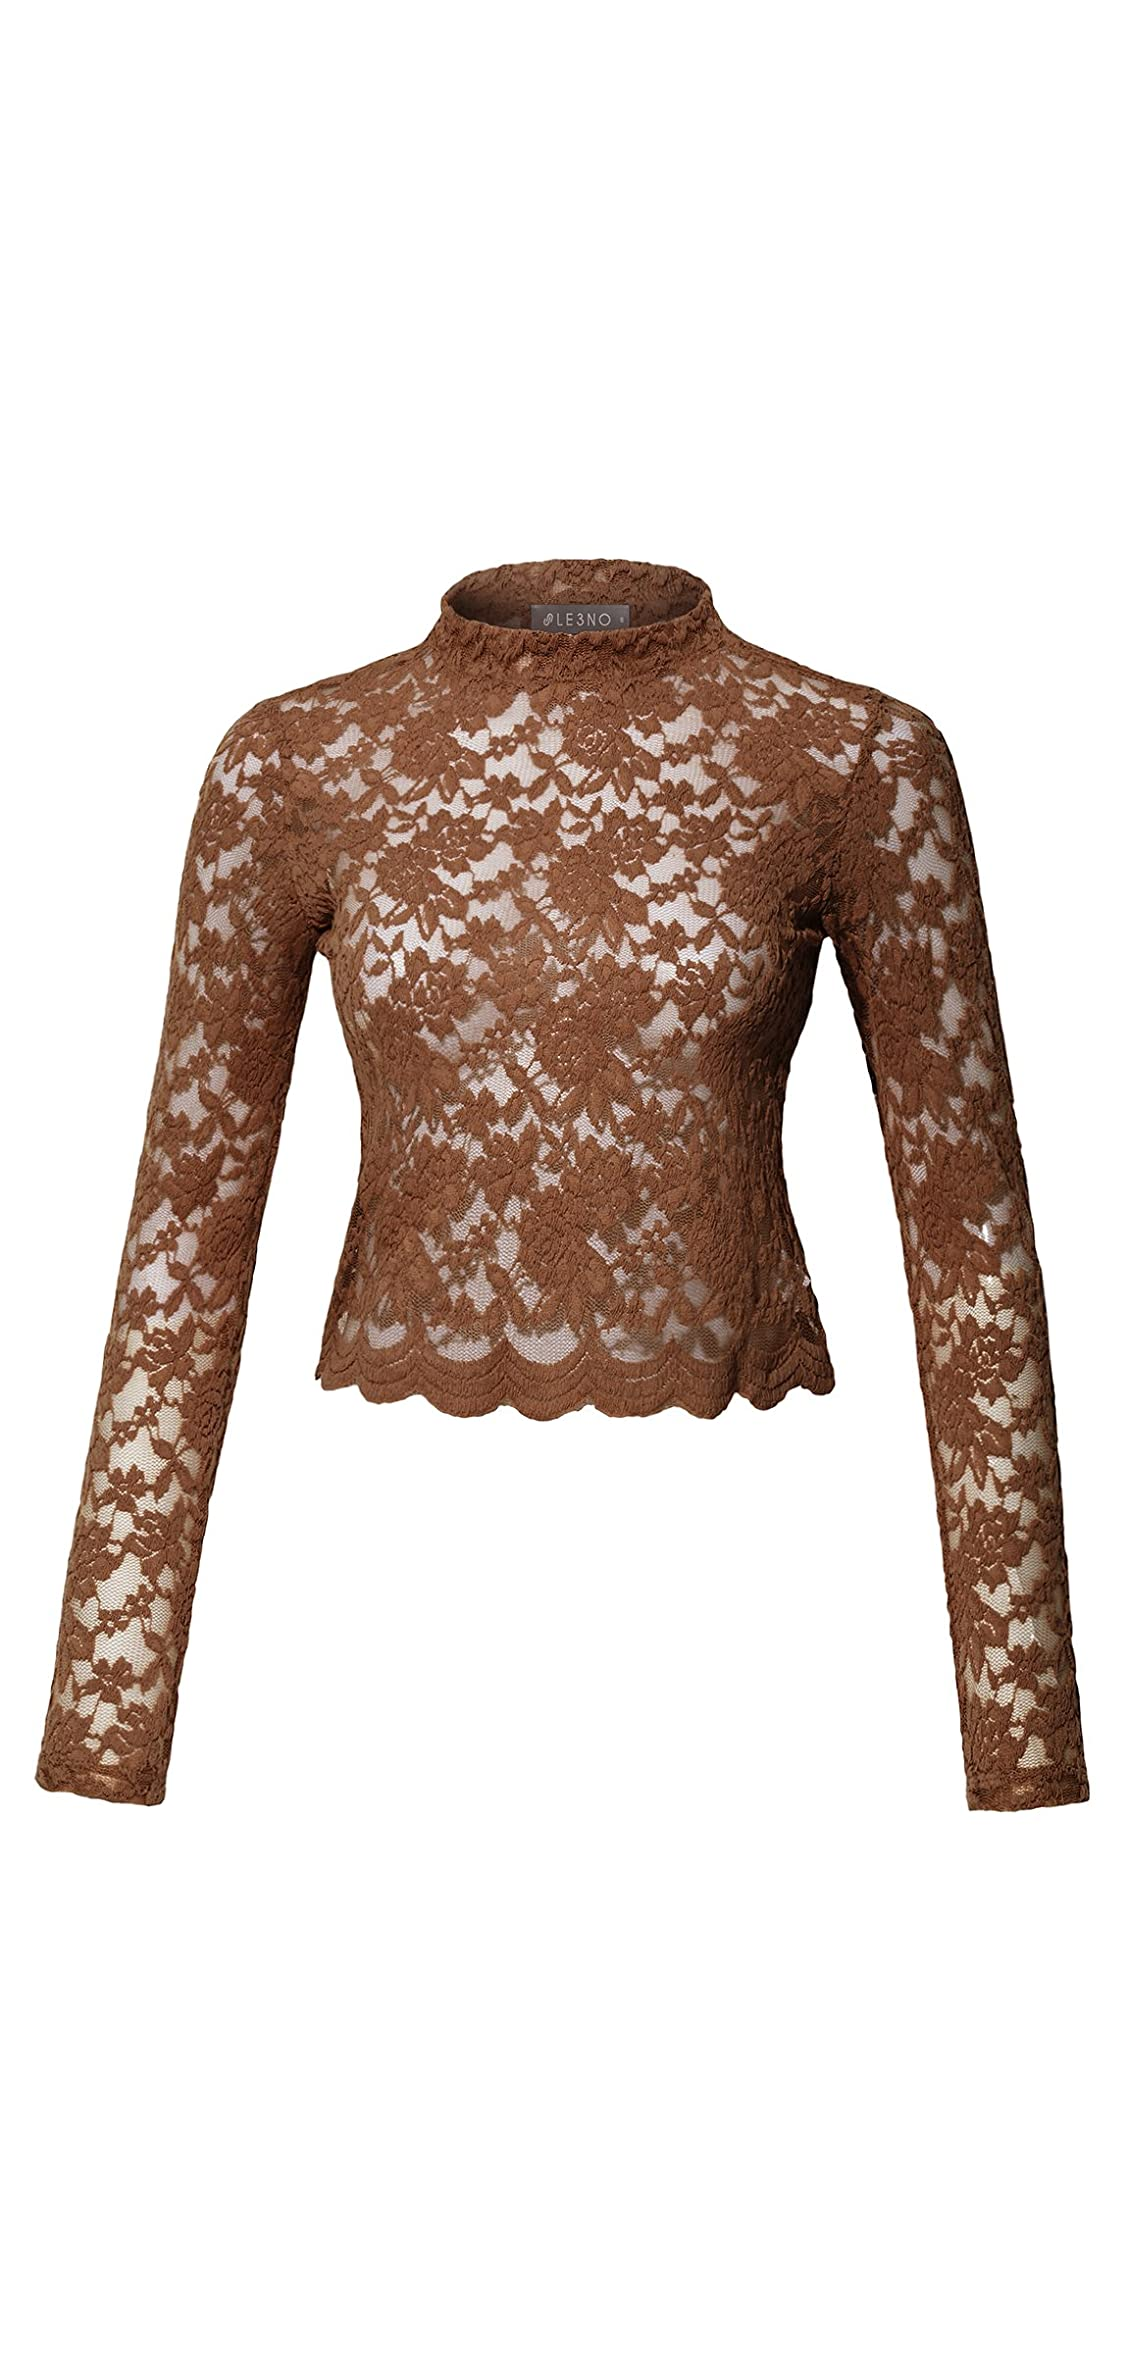 Womens Stretchy Long Sleeve Floral Lace Mock Neck Crop Top